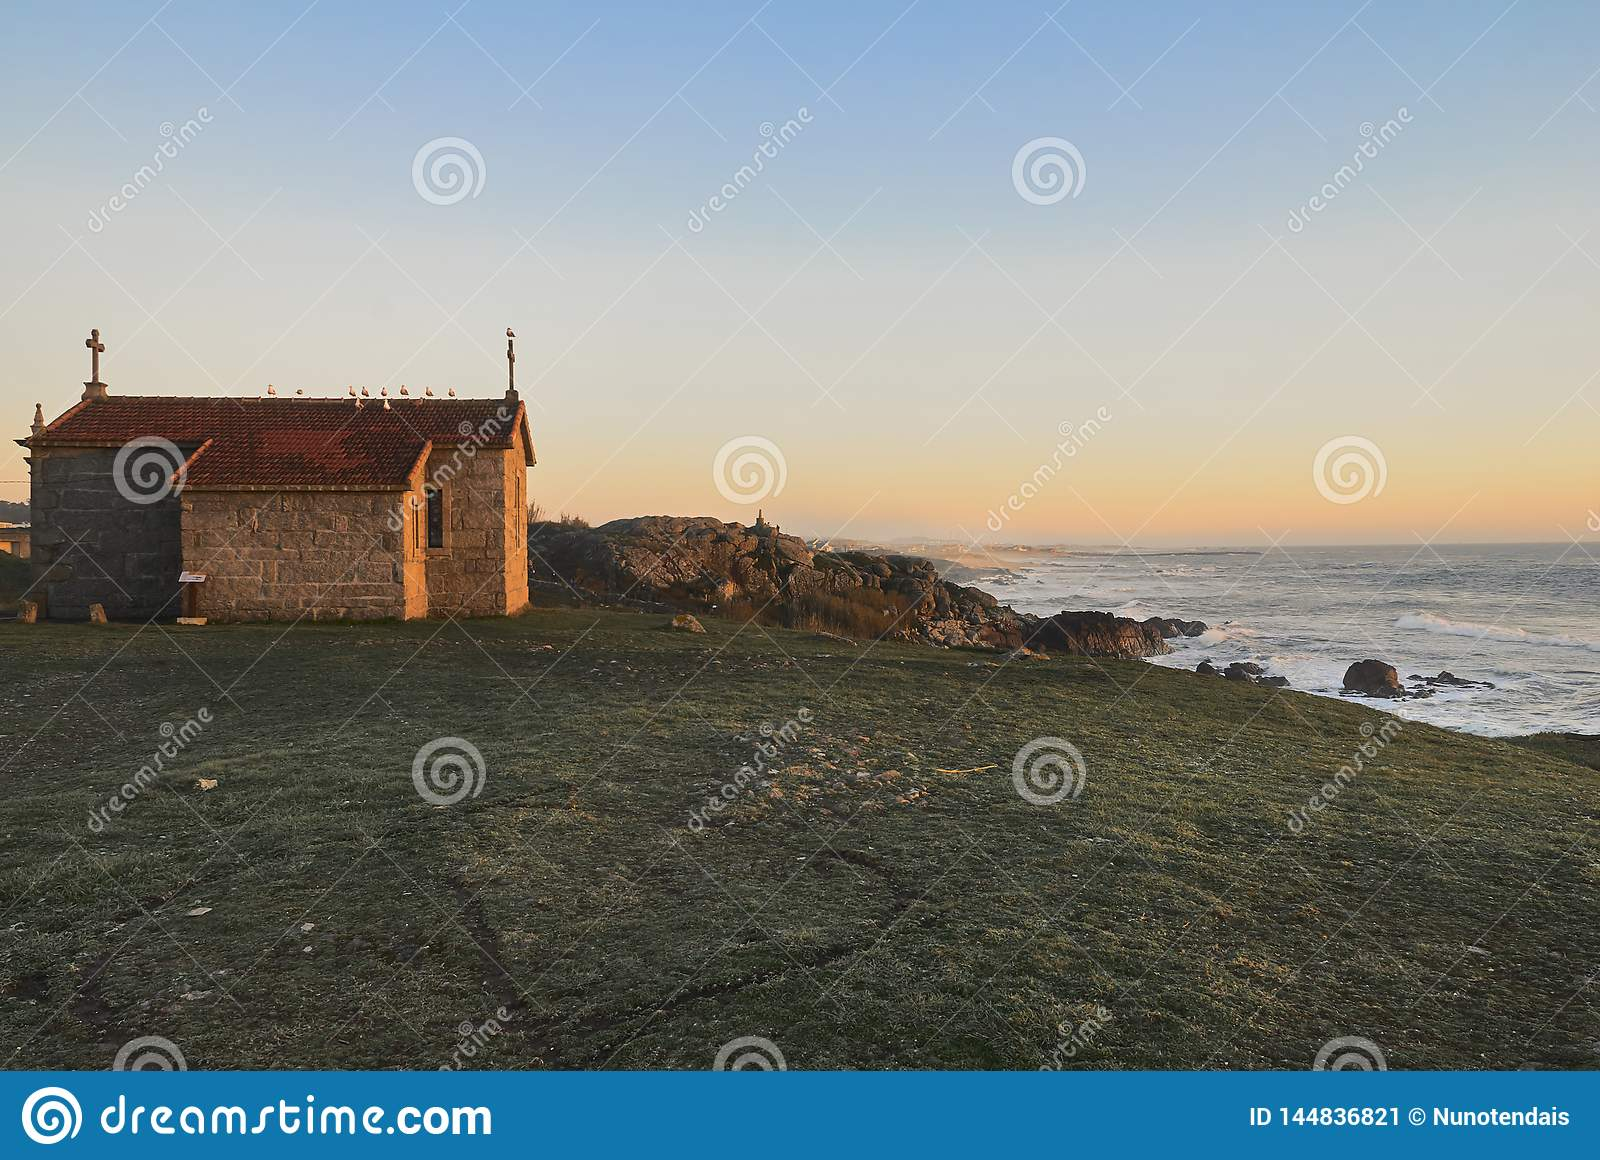 Chapel overlooking the ocean at sunset